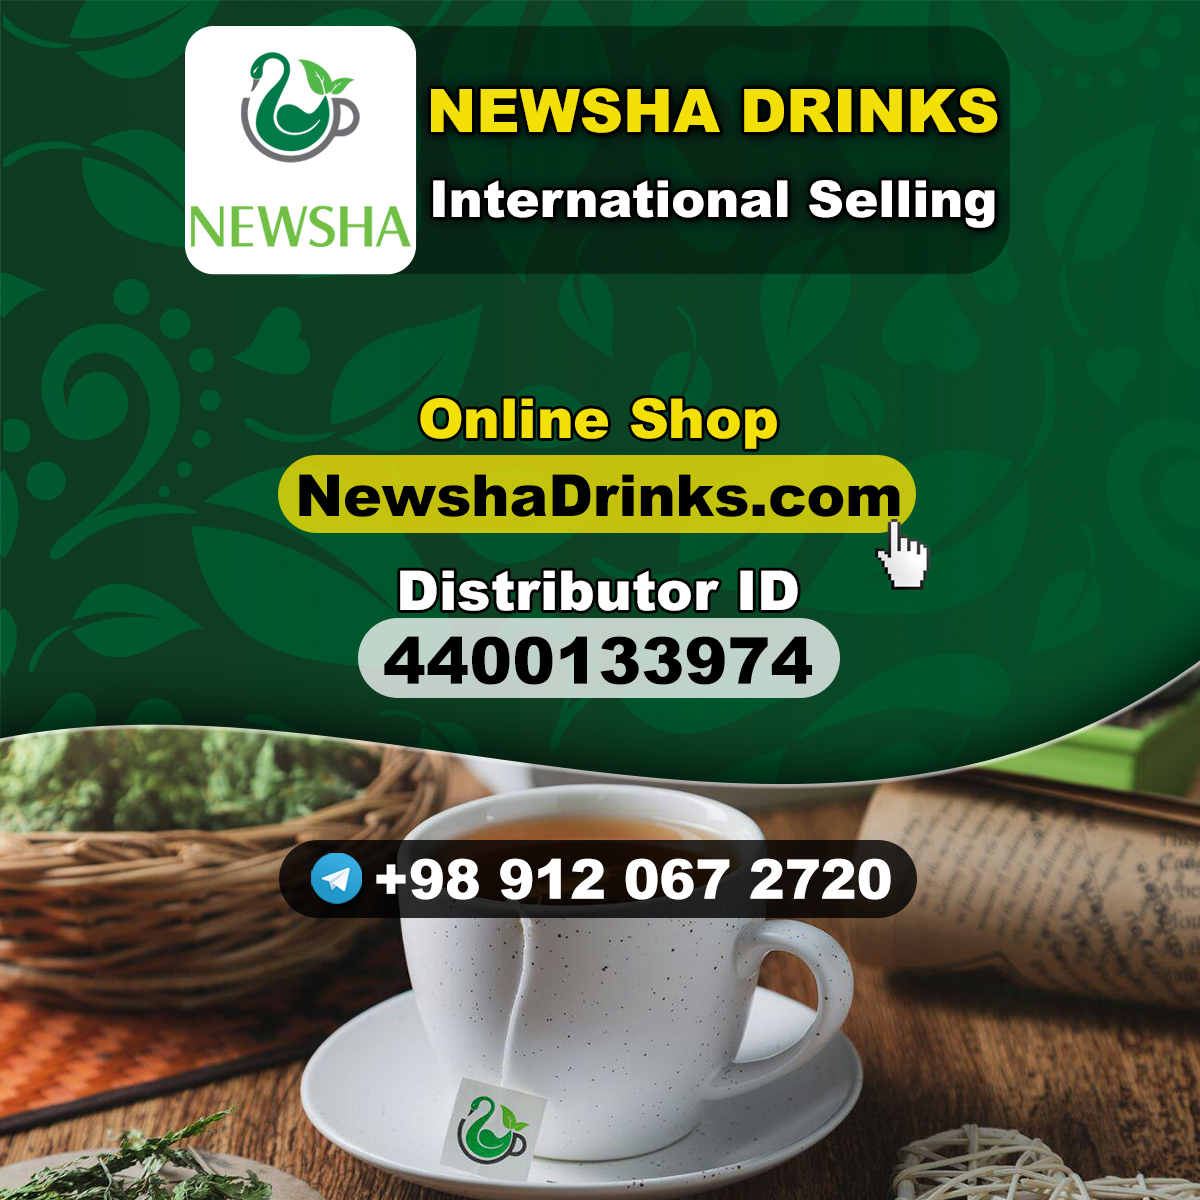 Newsha Drinks International Selling